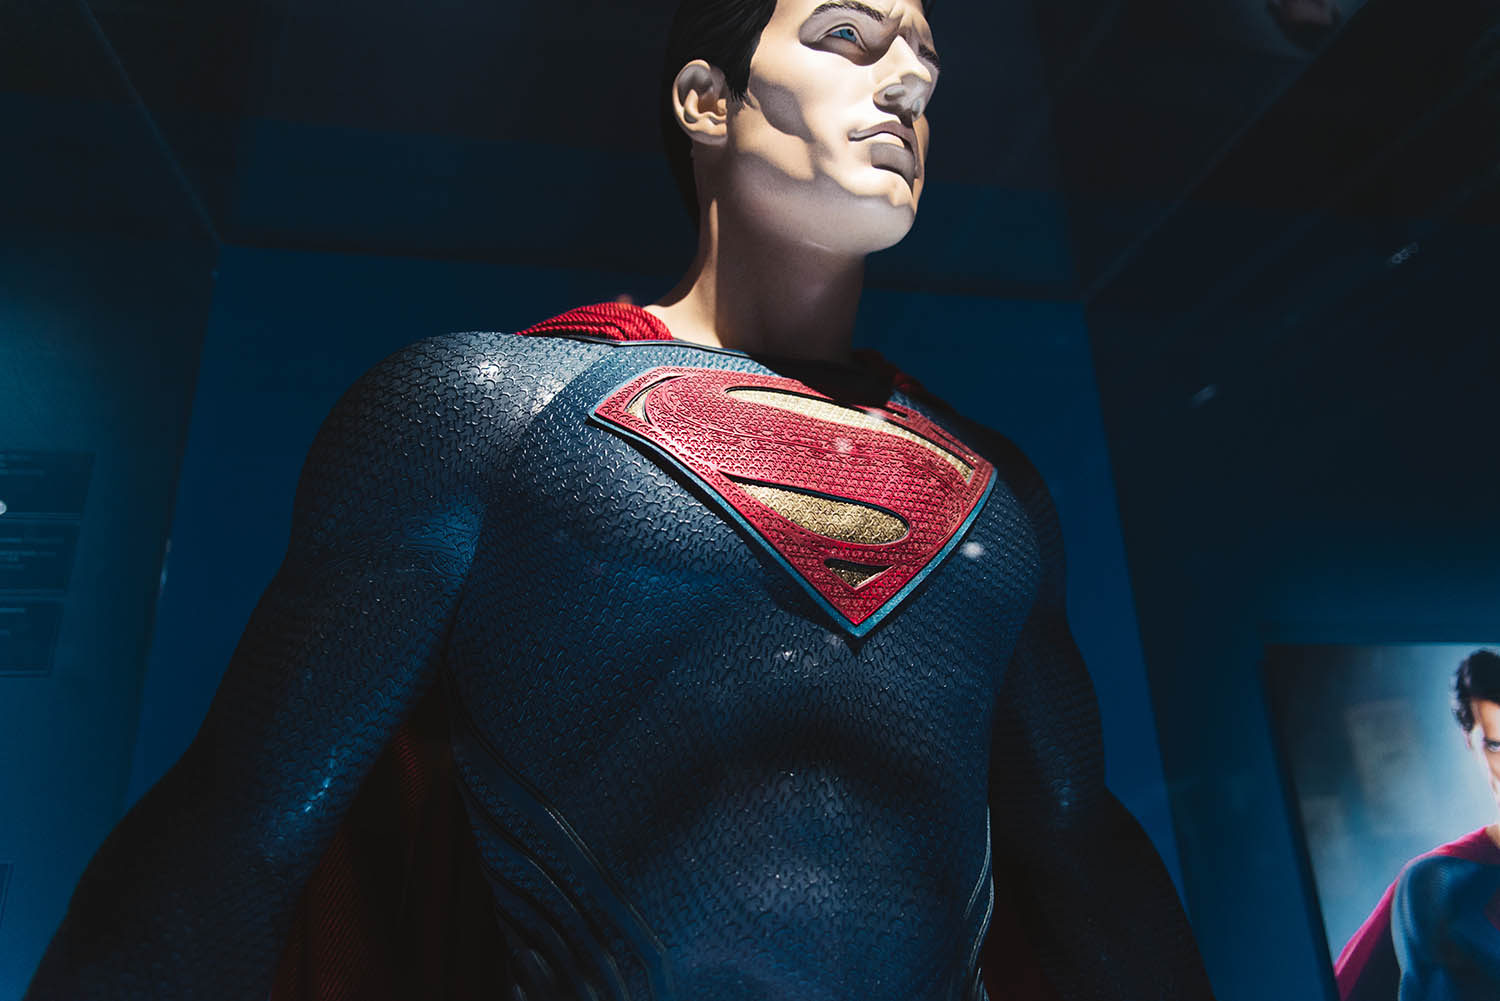 Superheroe Costume, The Exhibition: The Art of DC: The Dawn of Superheroes